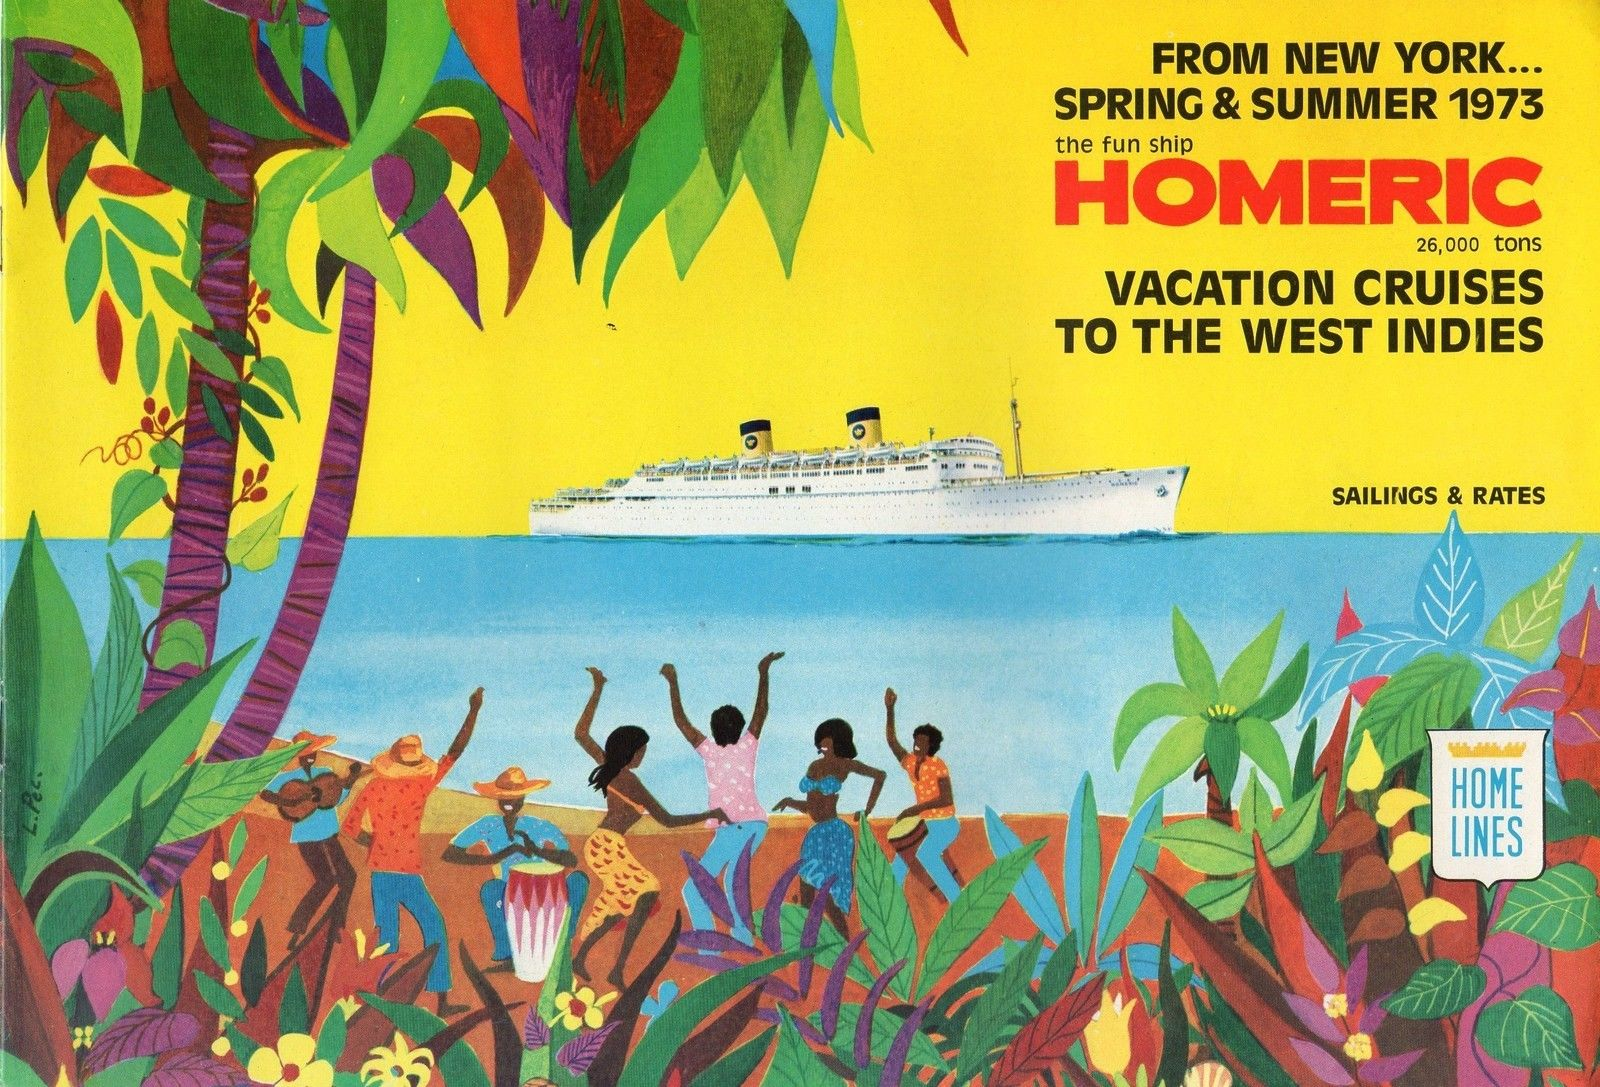 Nicks Cruise Corner Remembering Home Lines Homeric On The Rd - Homeric cruise ship